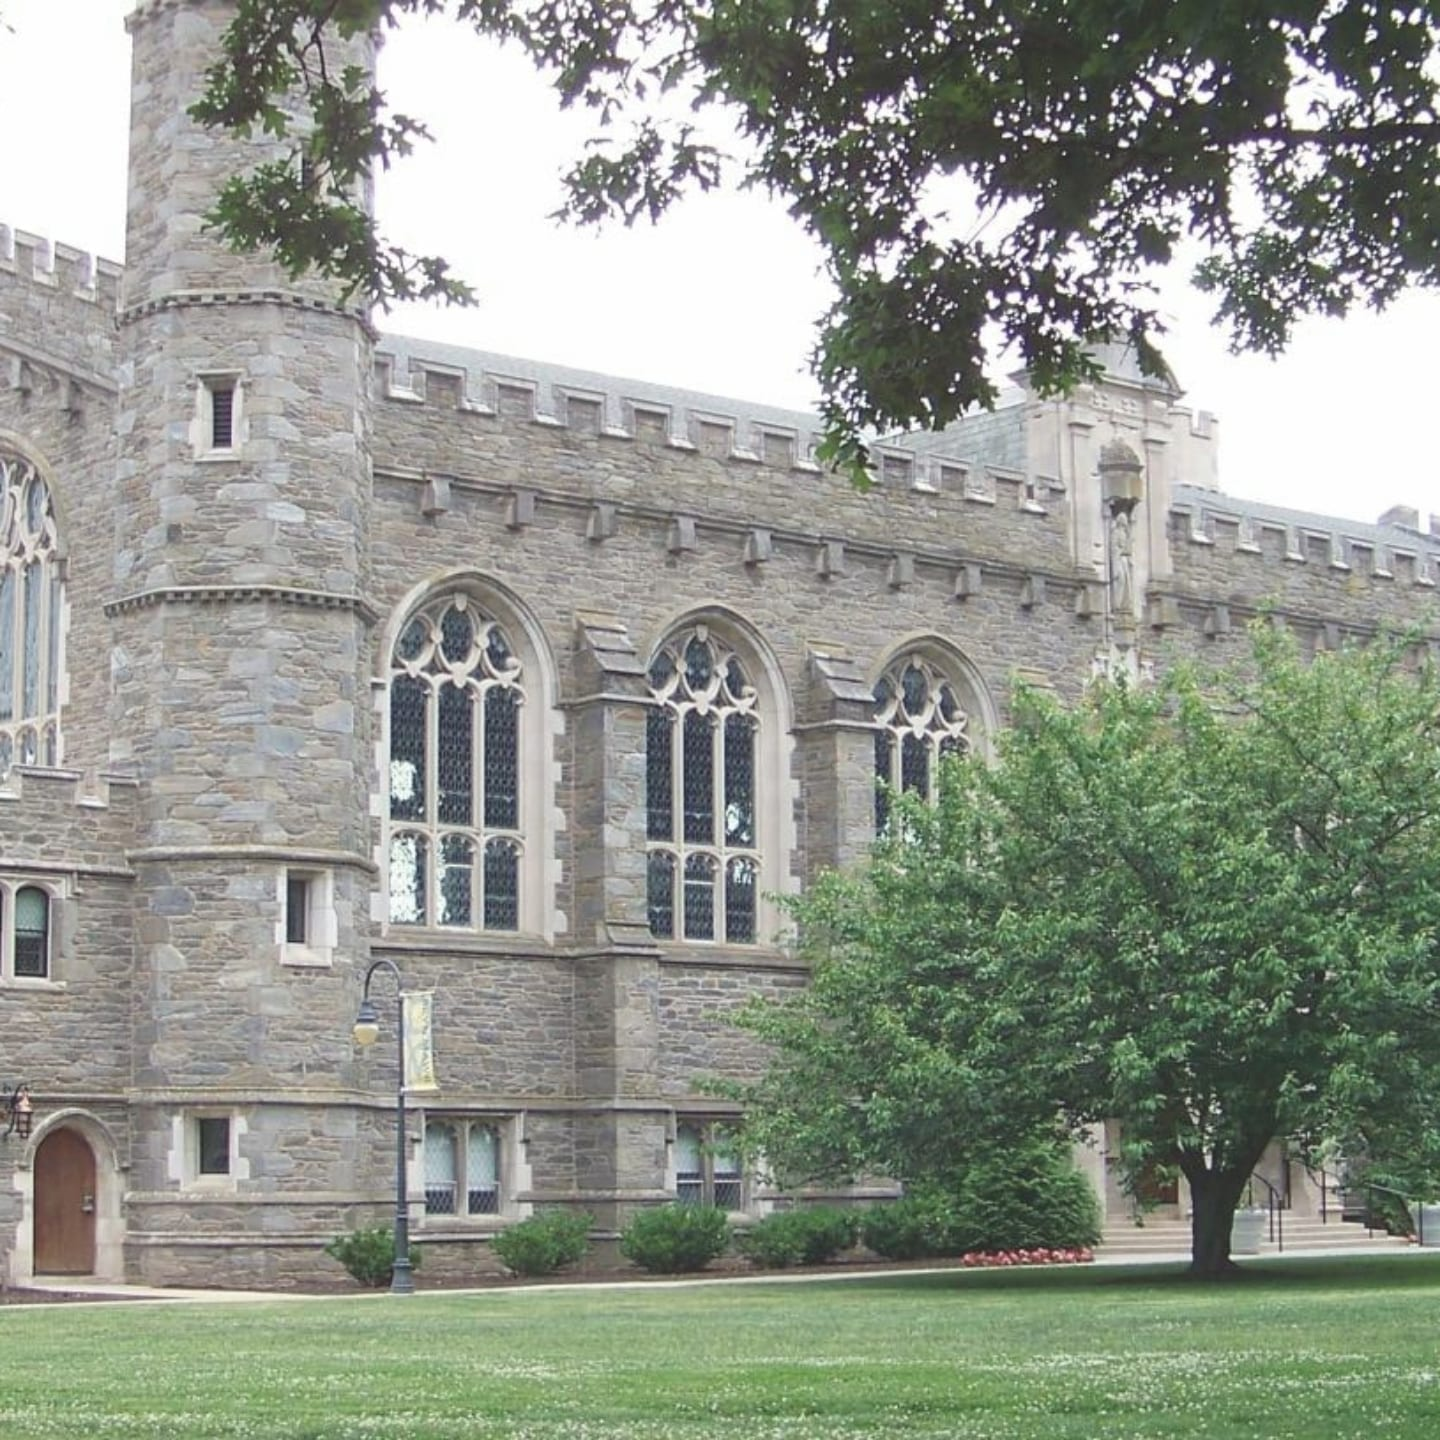 Stone building on the campus of Bryn Mawr College